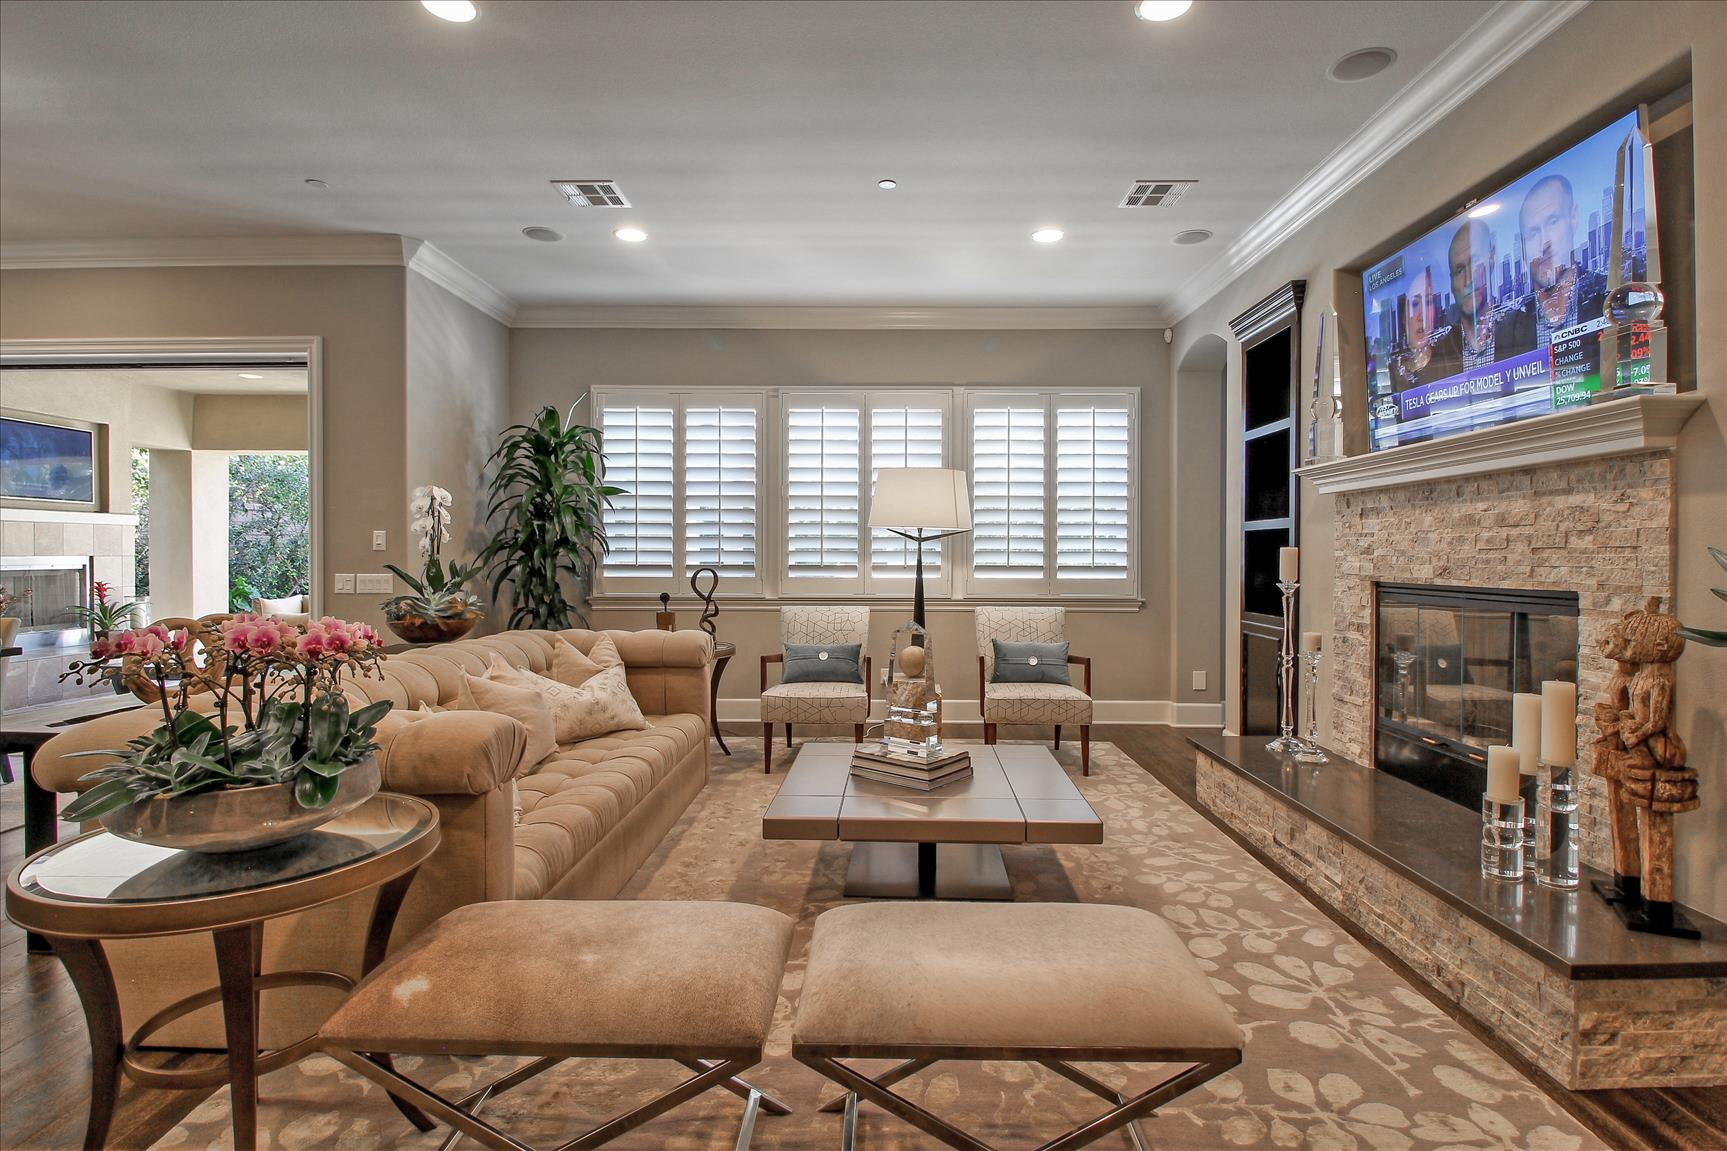 17471 Kennebunk Ln, Huntington Beach, CA  9264915.jpg